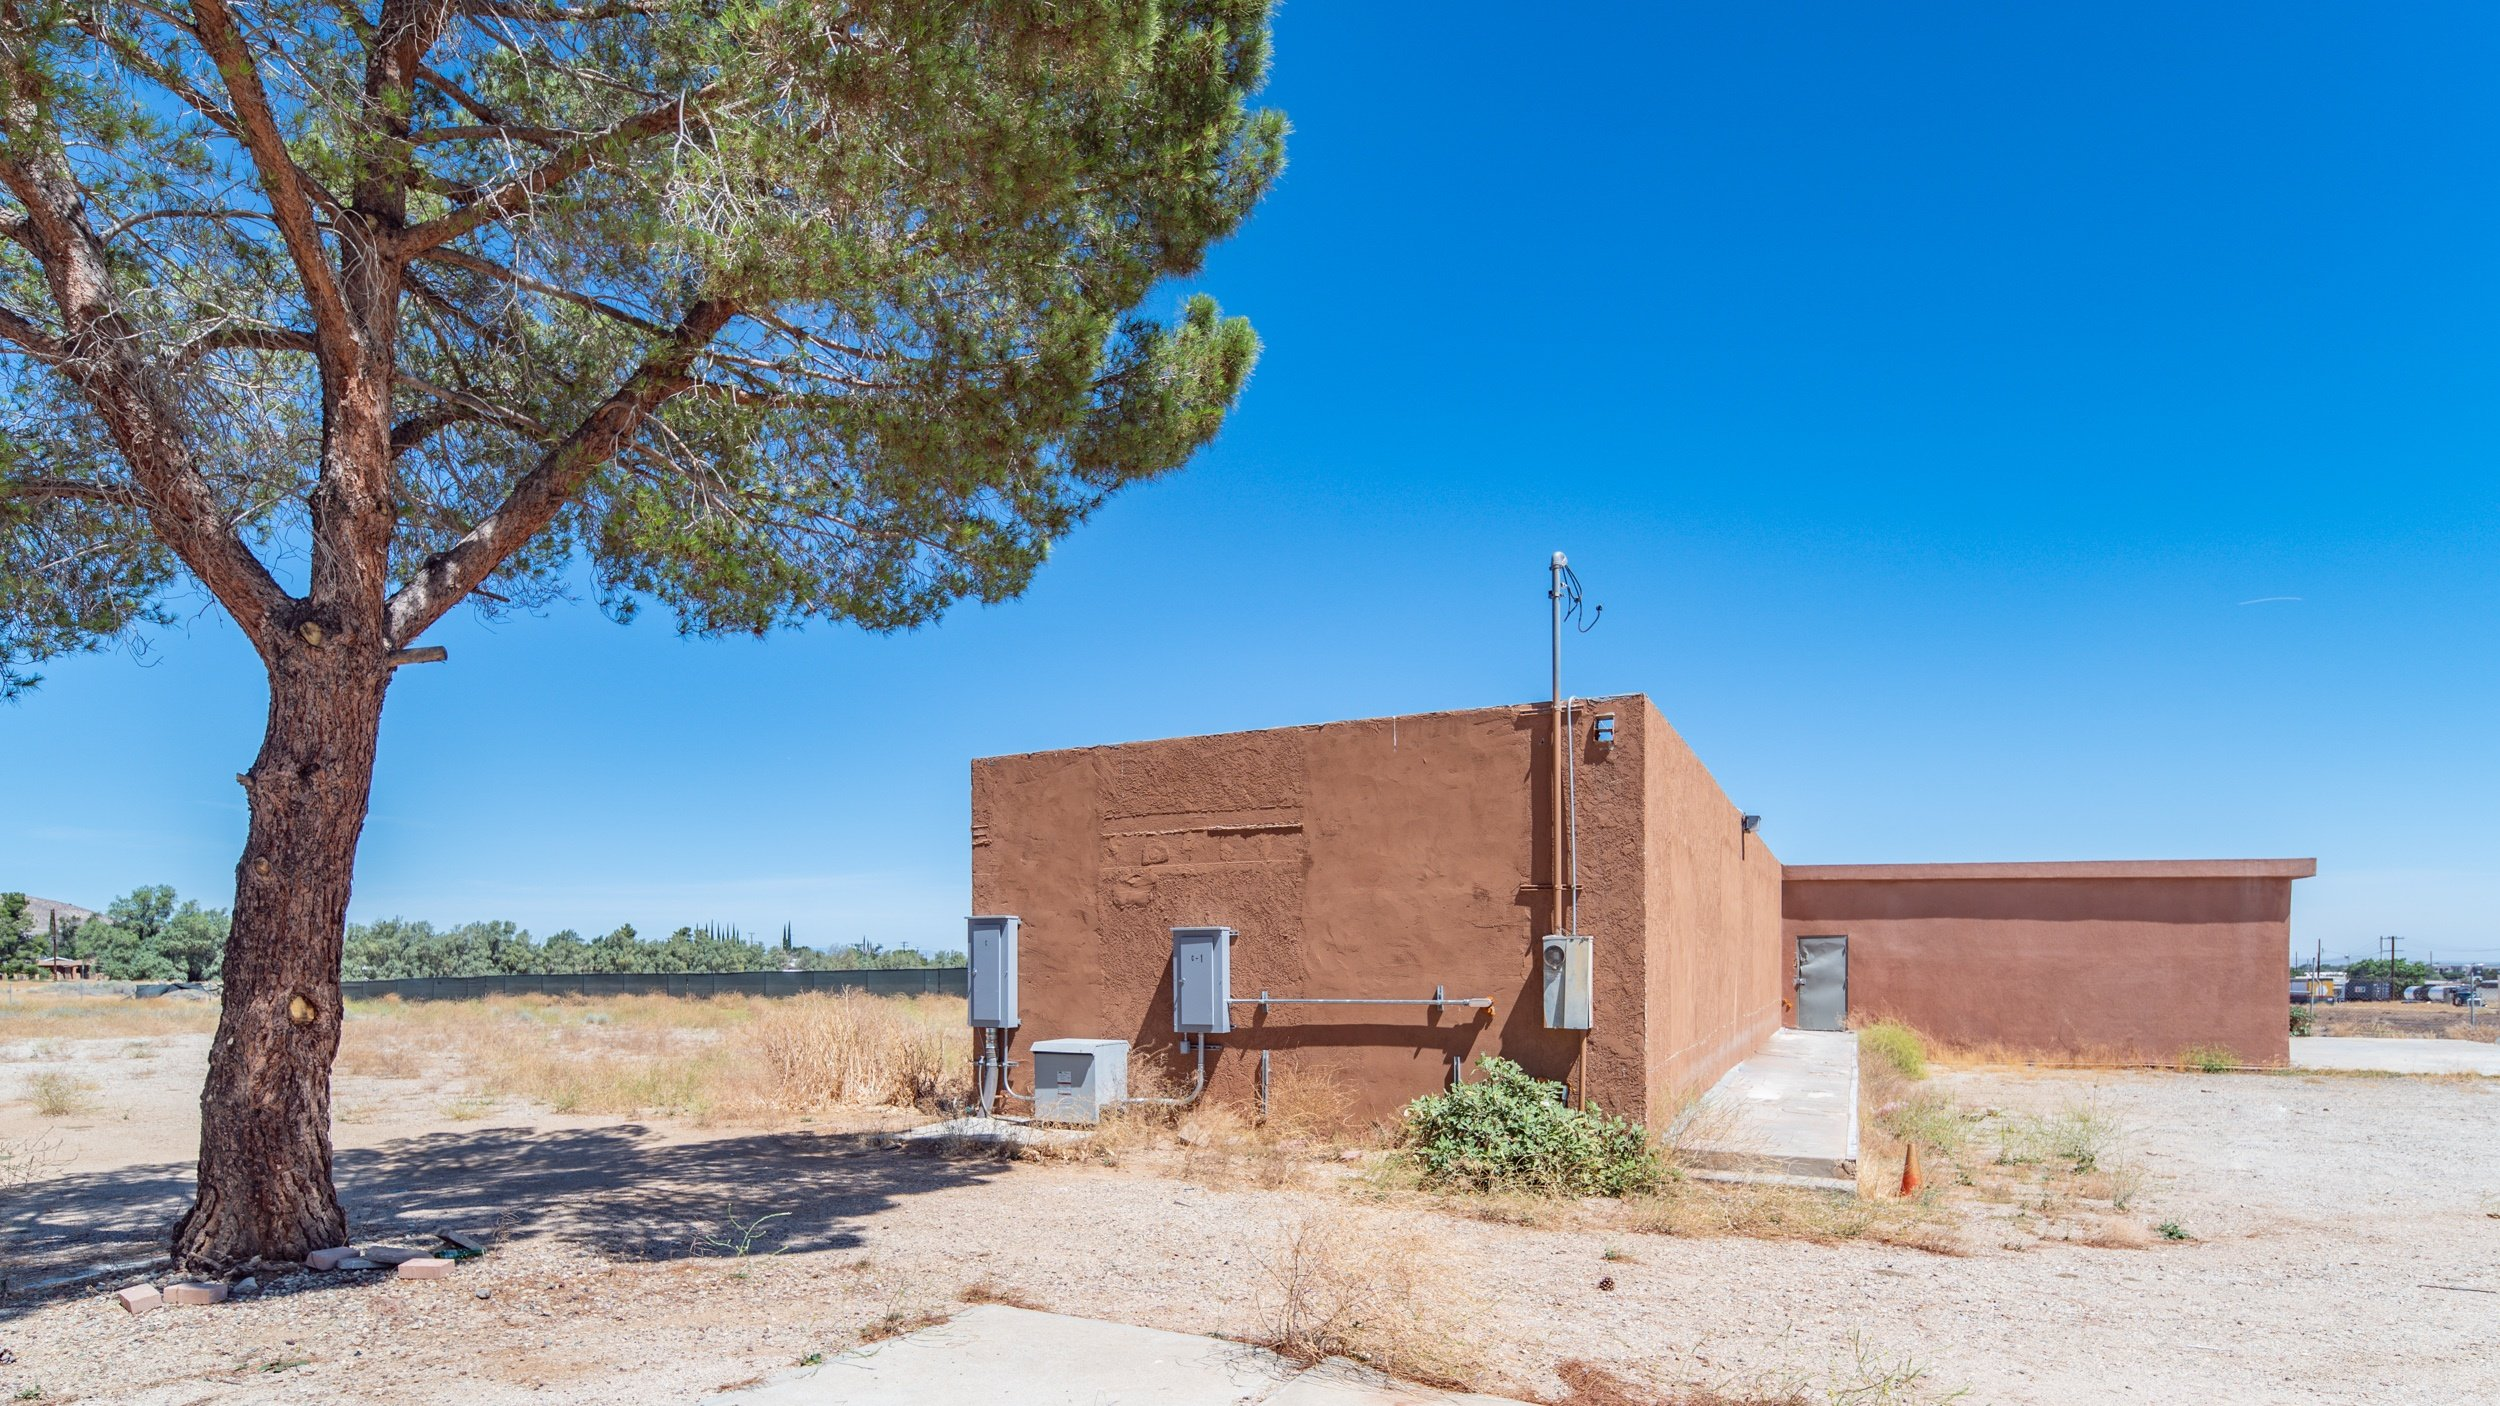 Palmdale Industrial Real Estate Building Four Side